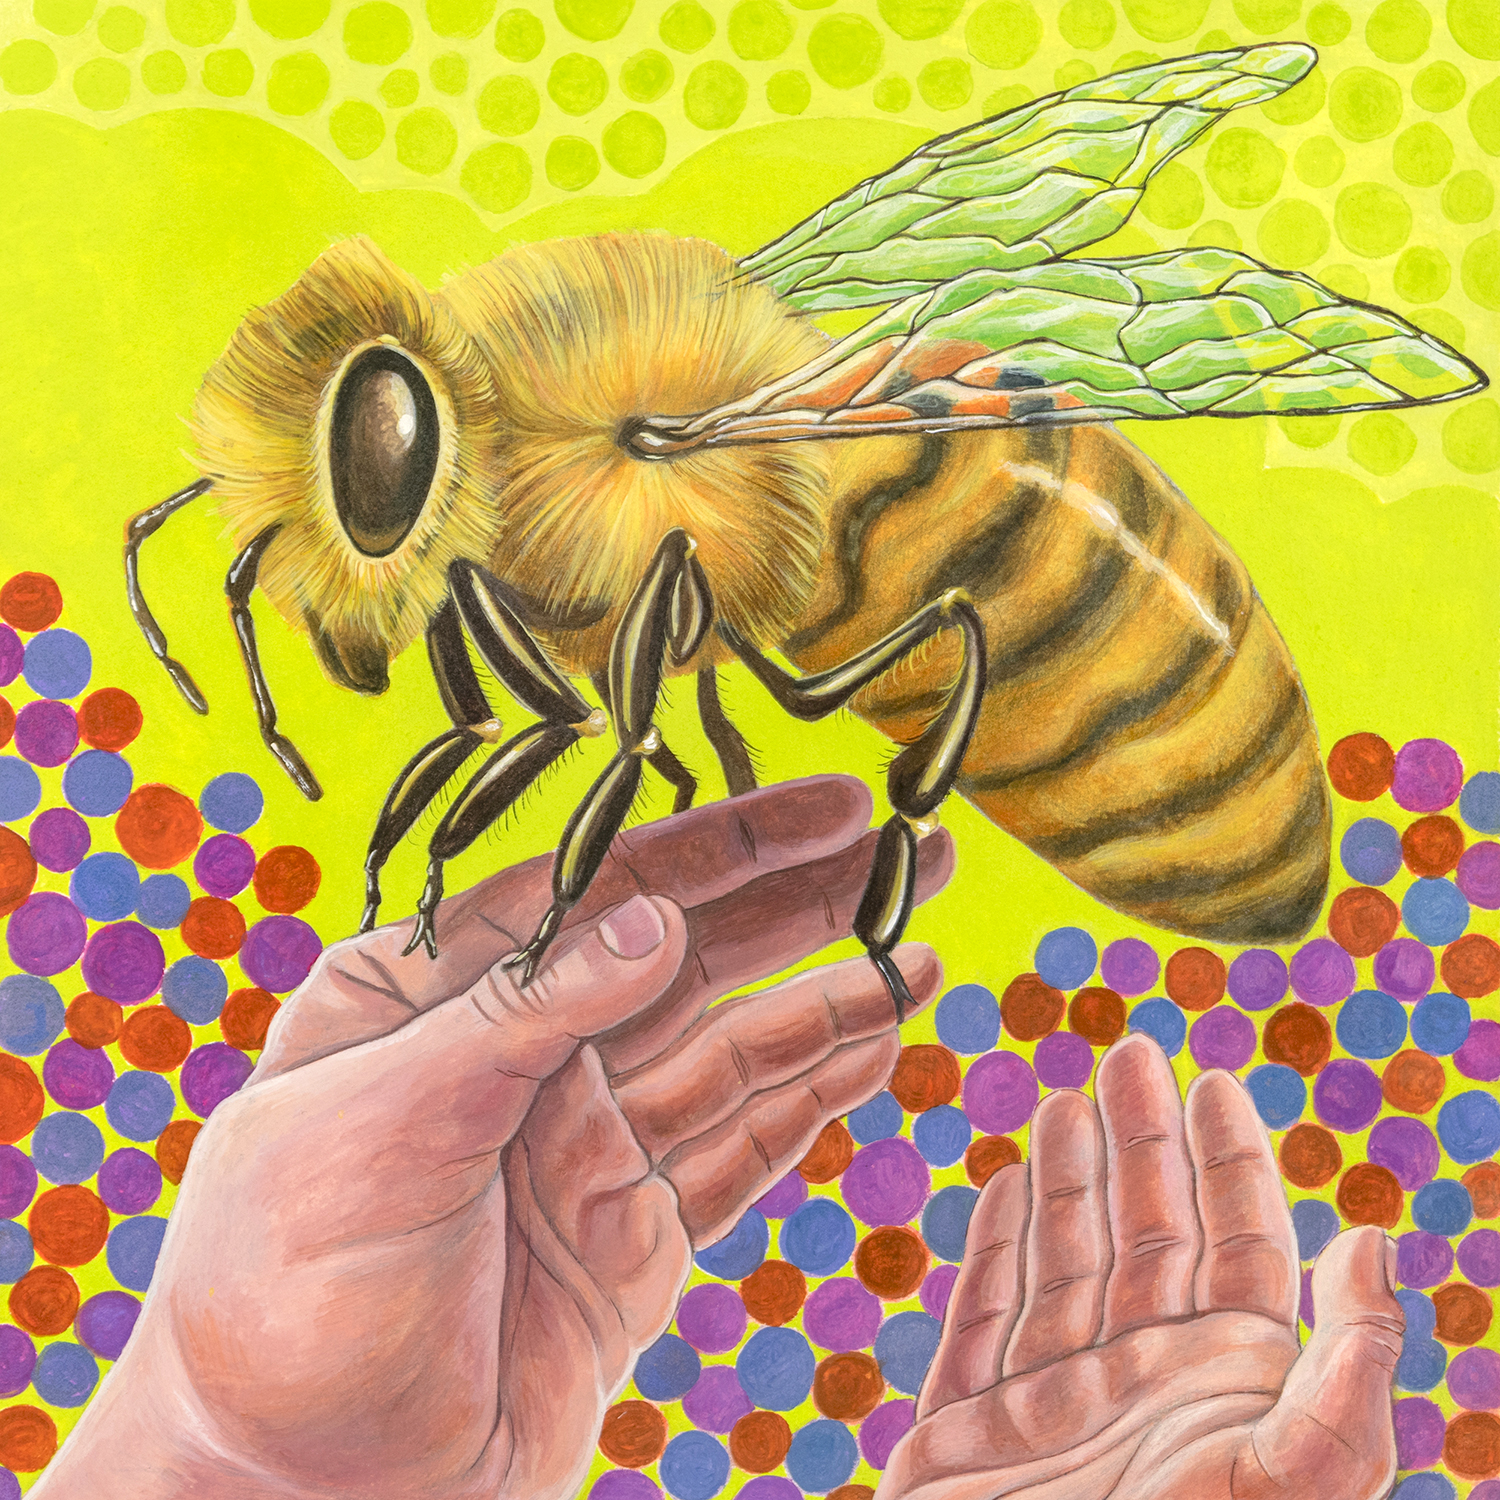 image_honey_bee_hand_1500.jpg